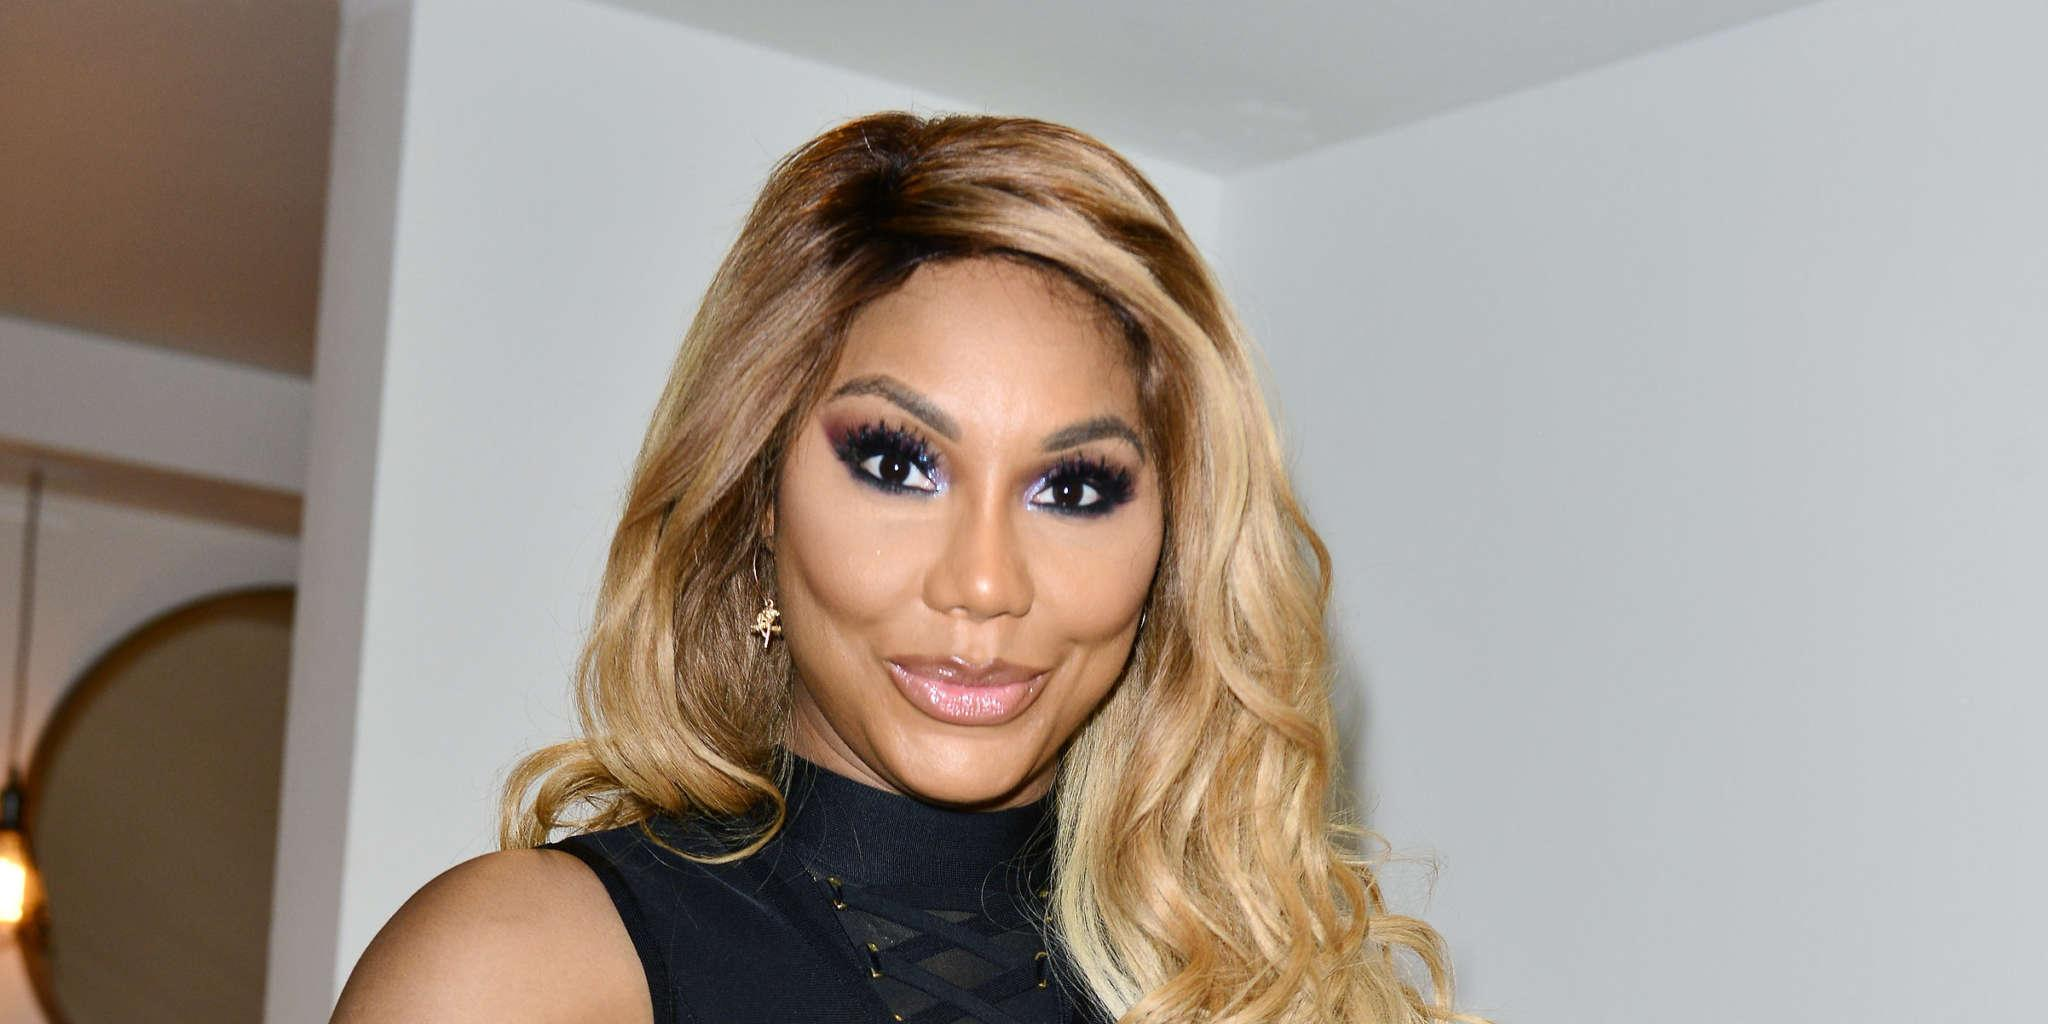 Tamar Braxton Is Grateful For Her Edges And Fans Admire Her